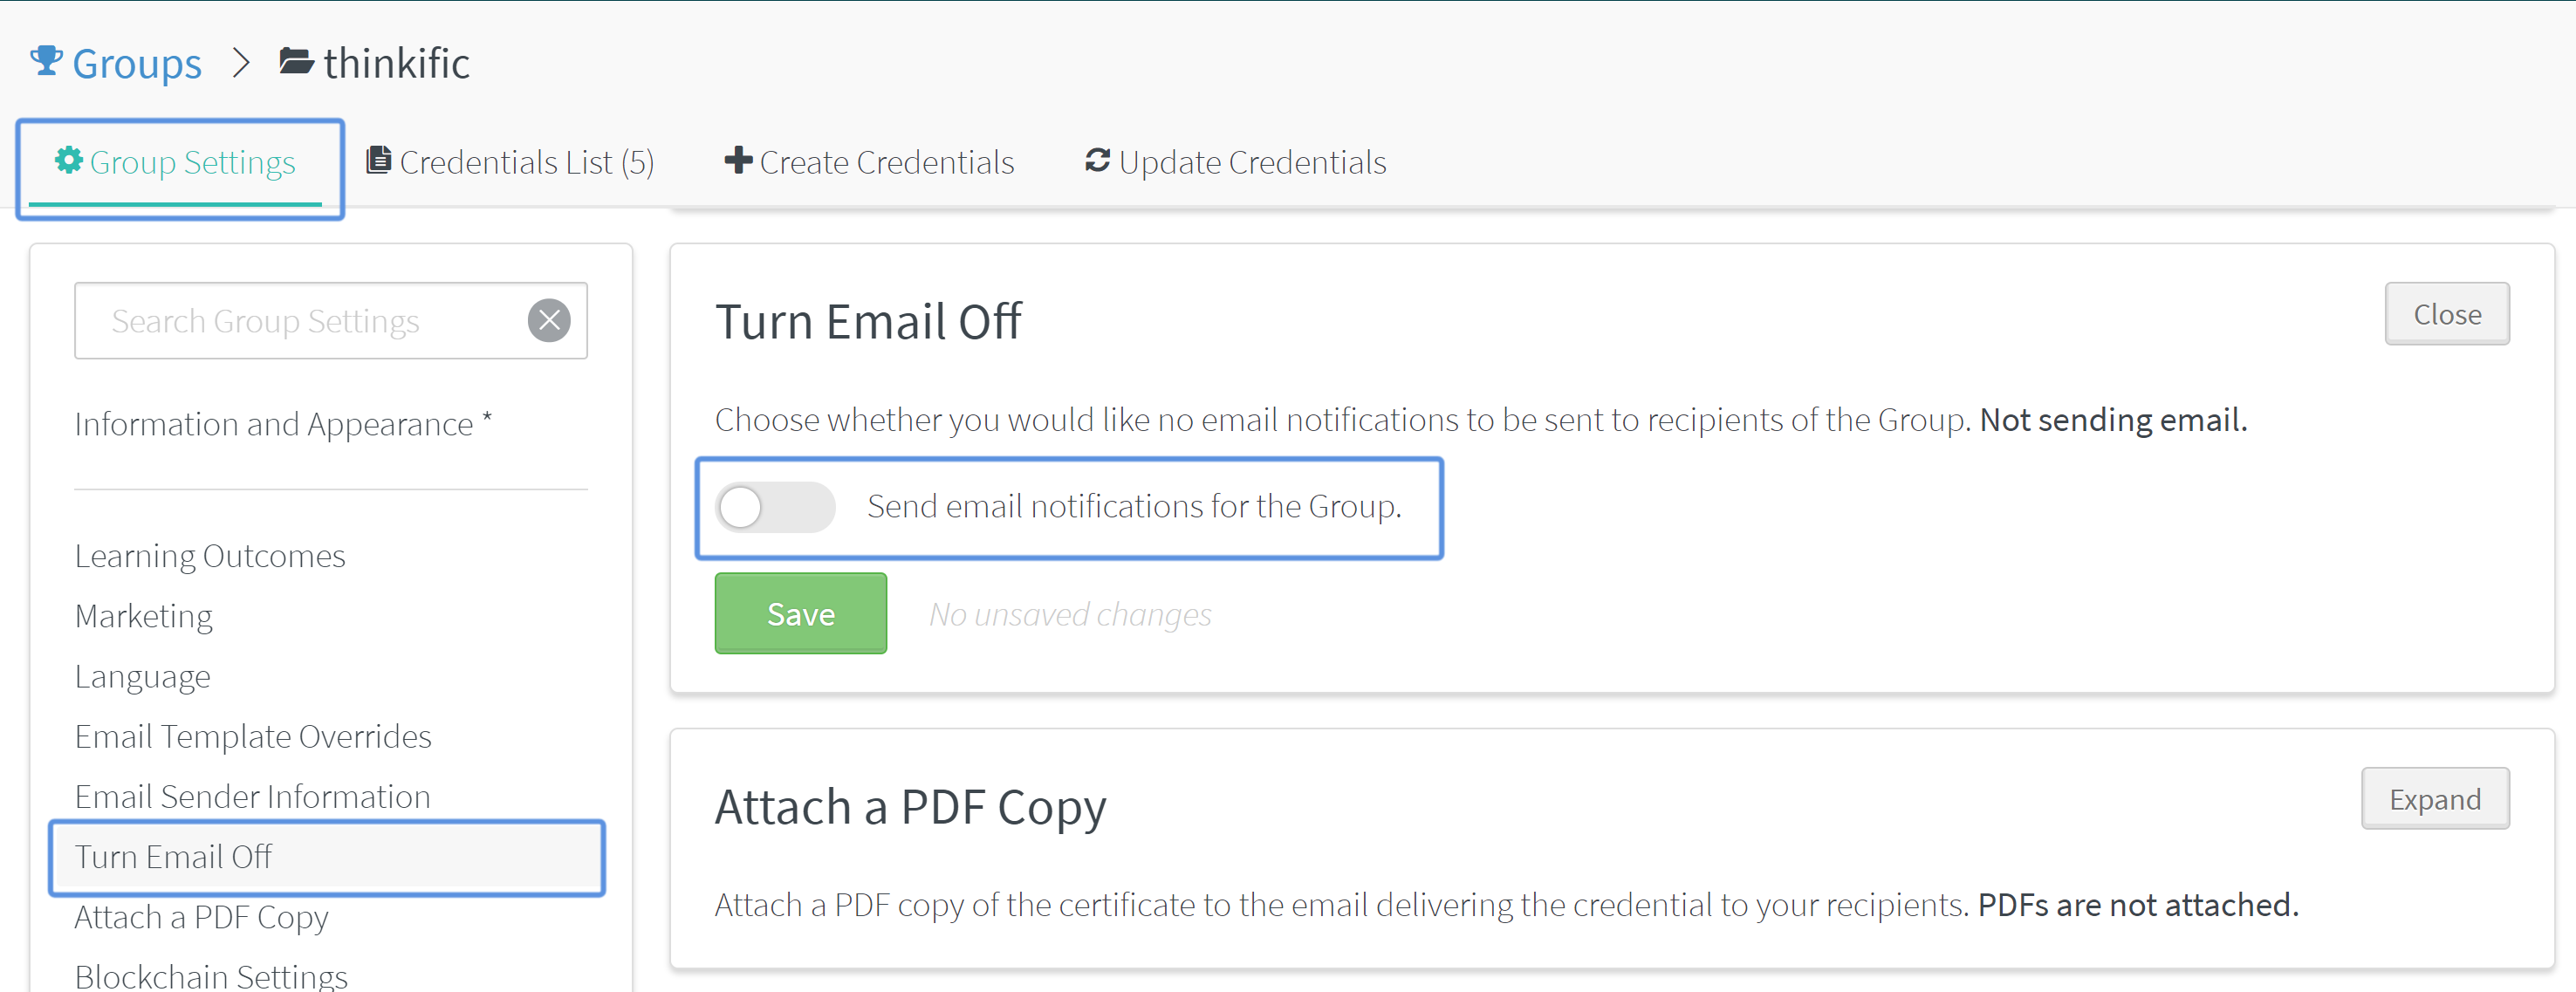 generally speaking we would recommend you deploy the certificates through thinkific so that you can customize the email template with your branding